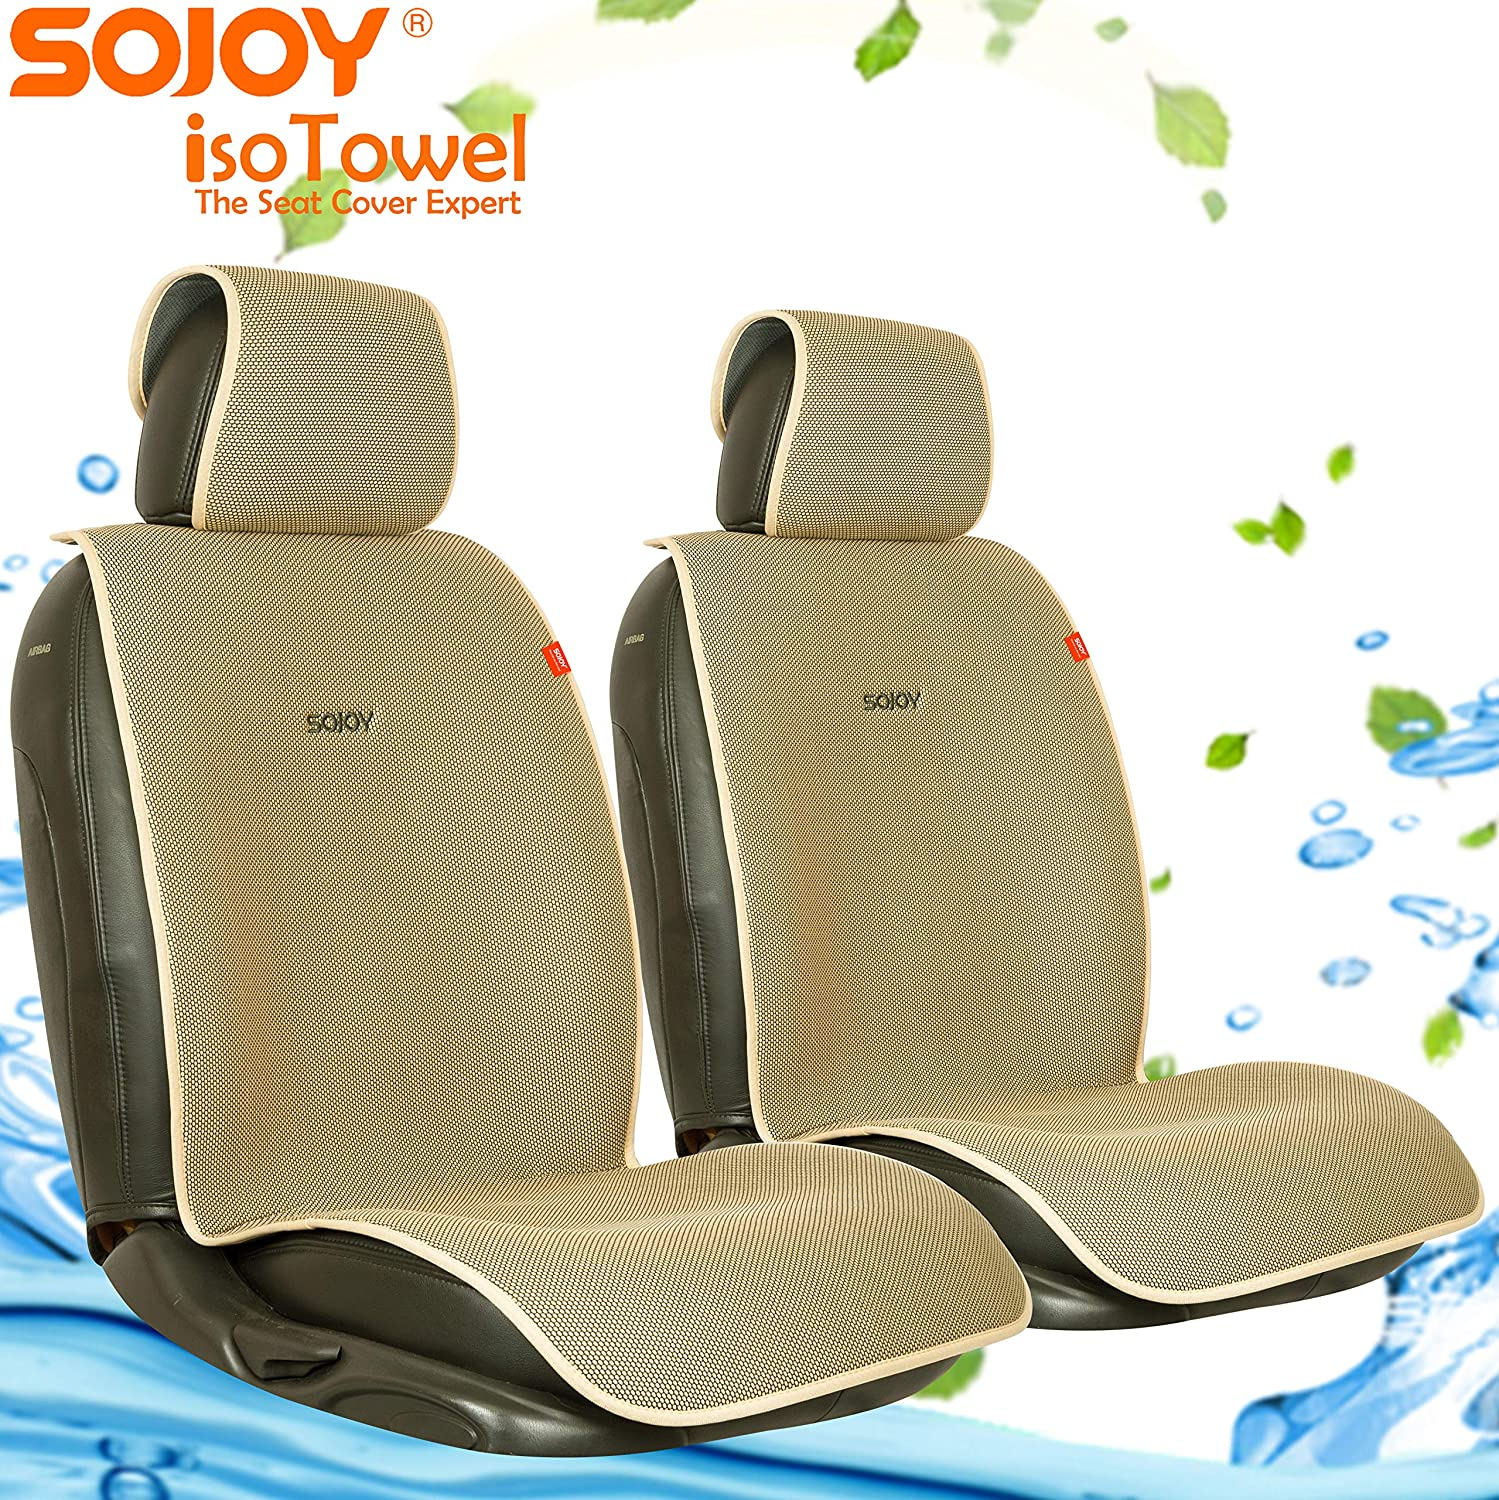 Cream and Tan Sojoy Auto USA SJ-0008-5 Sojoy Summer Cooling Four Seasons Car Seat Cushions for Front Two Seats Comes with 2 Pieces Honeycomb Cloth